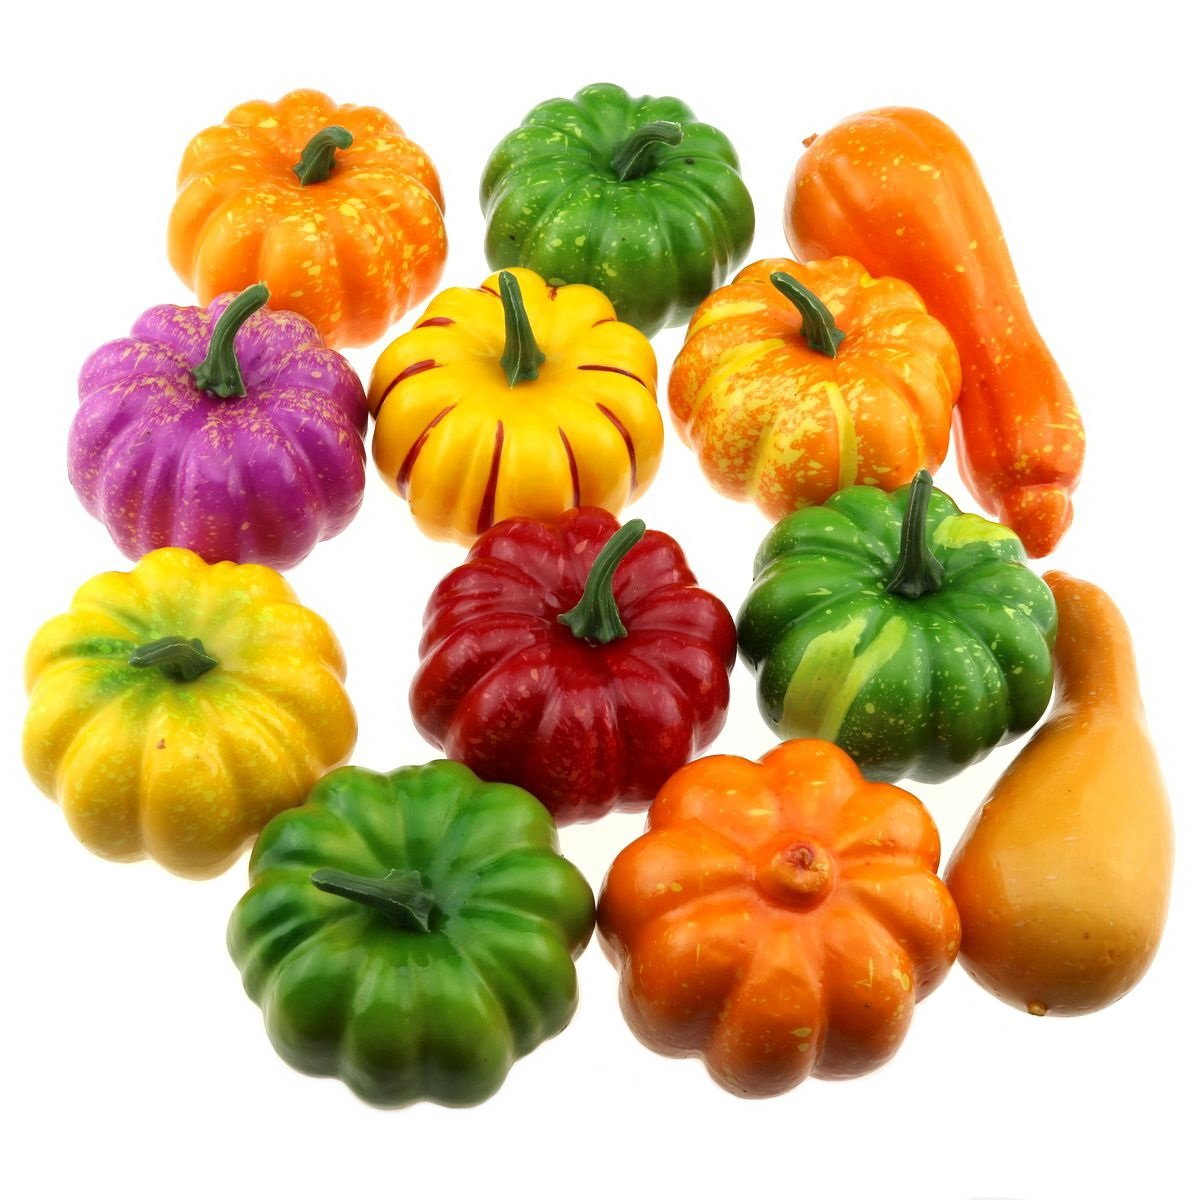 Gresorth 12 PCS Mixed Color Artificial Mini Pumpkins Fake Fall Harvest Pumpkin for Halloween Decoration by Gresorth